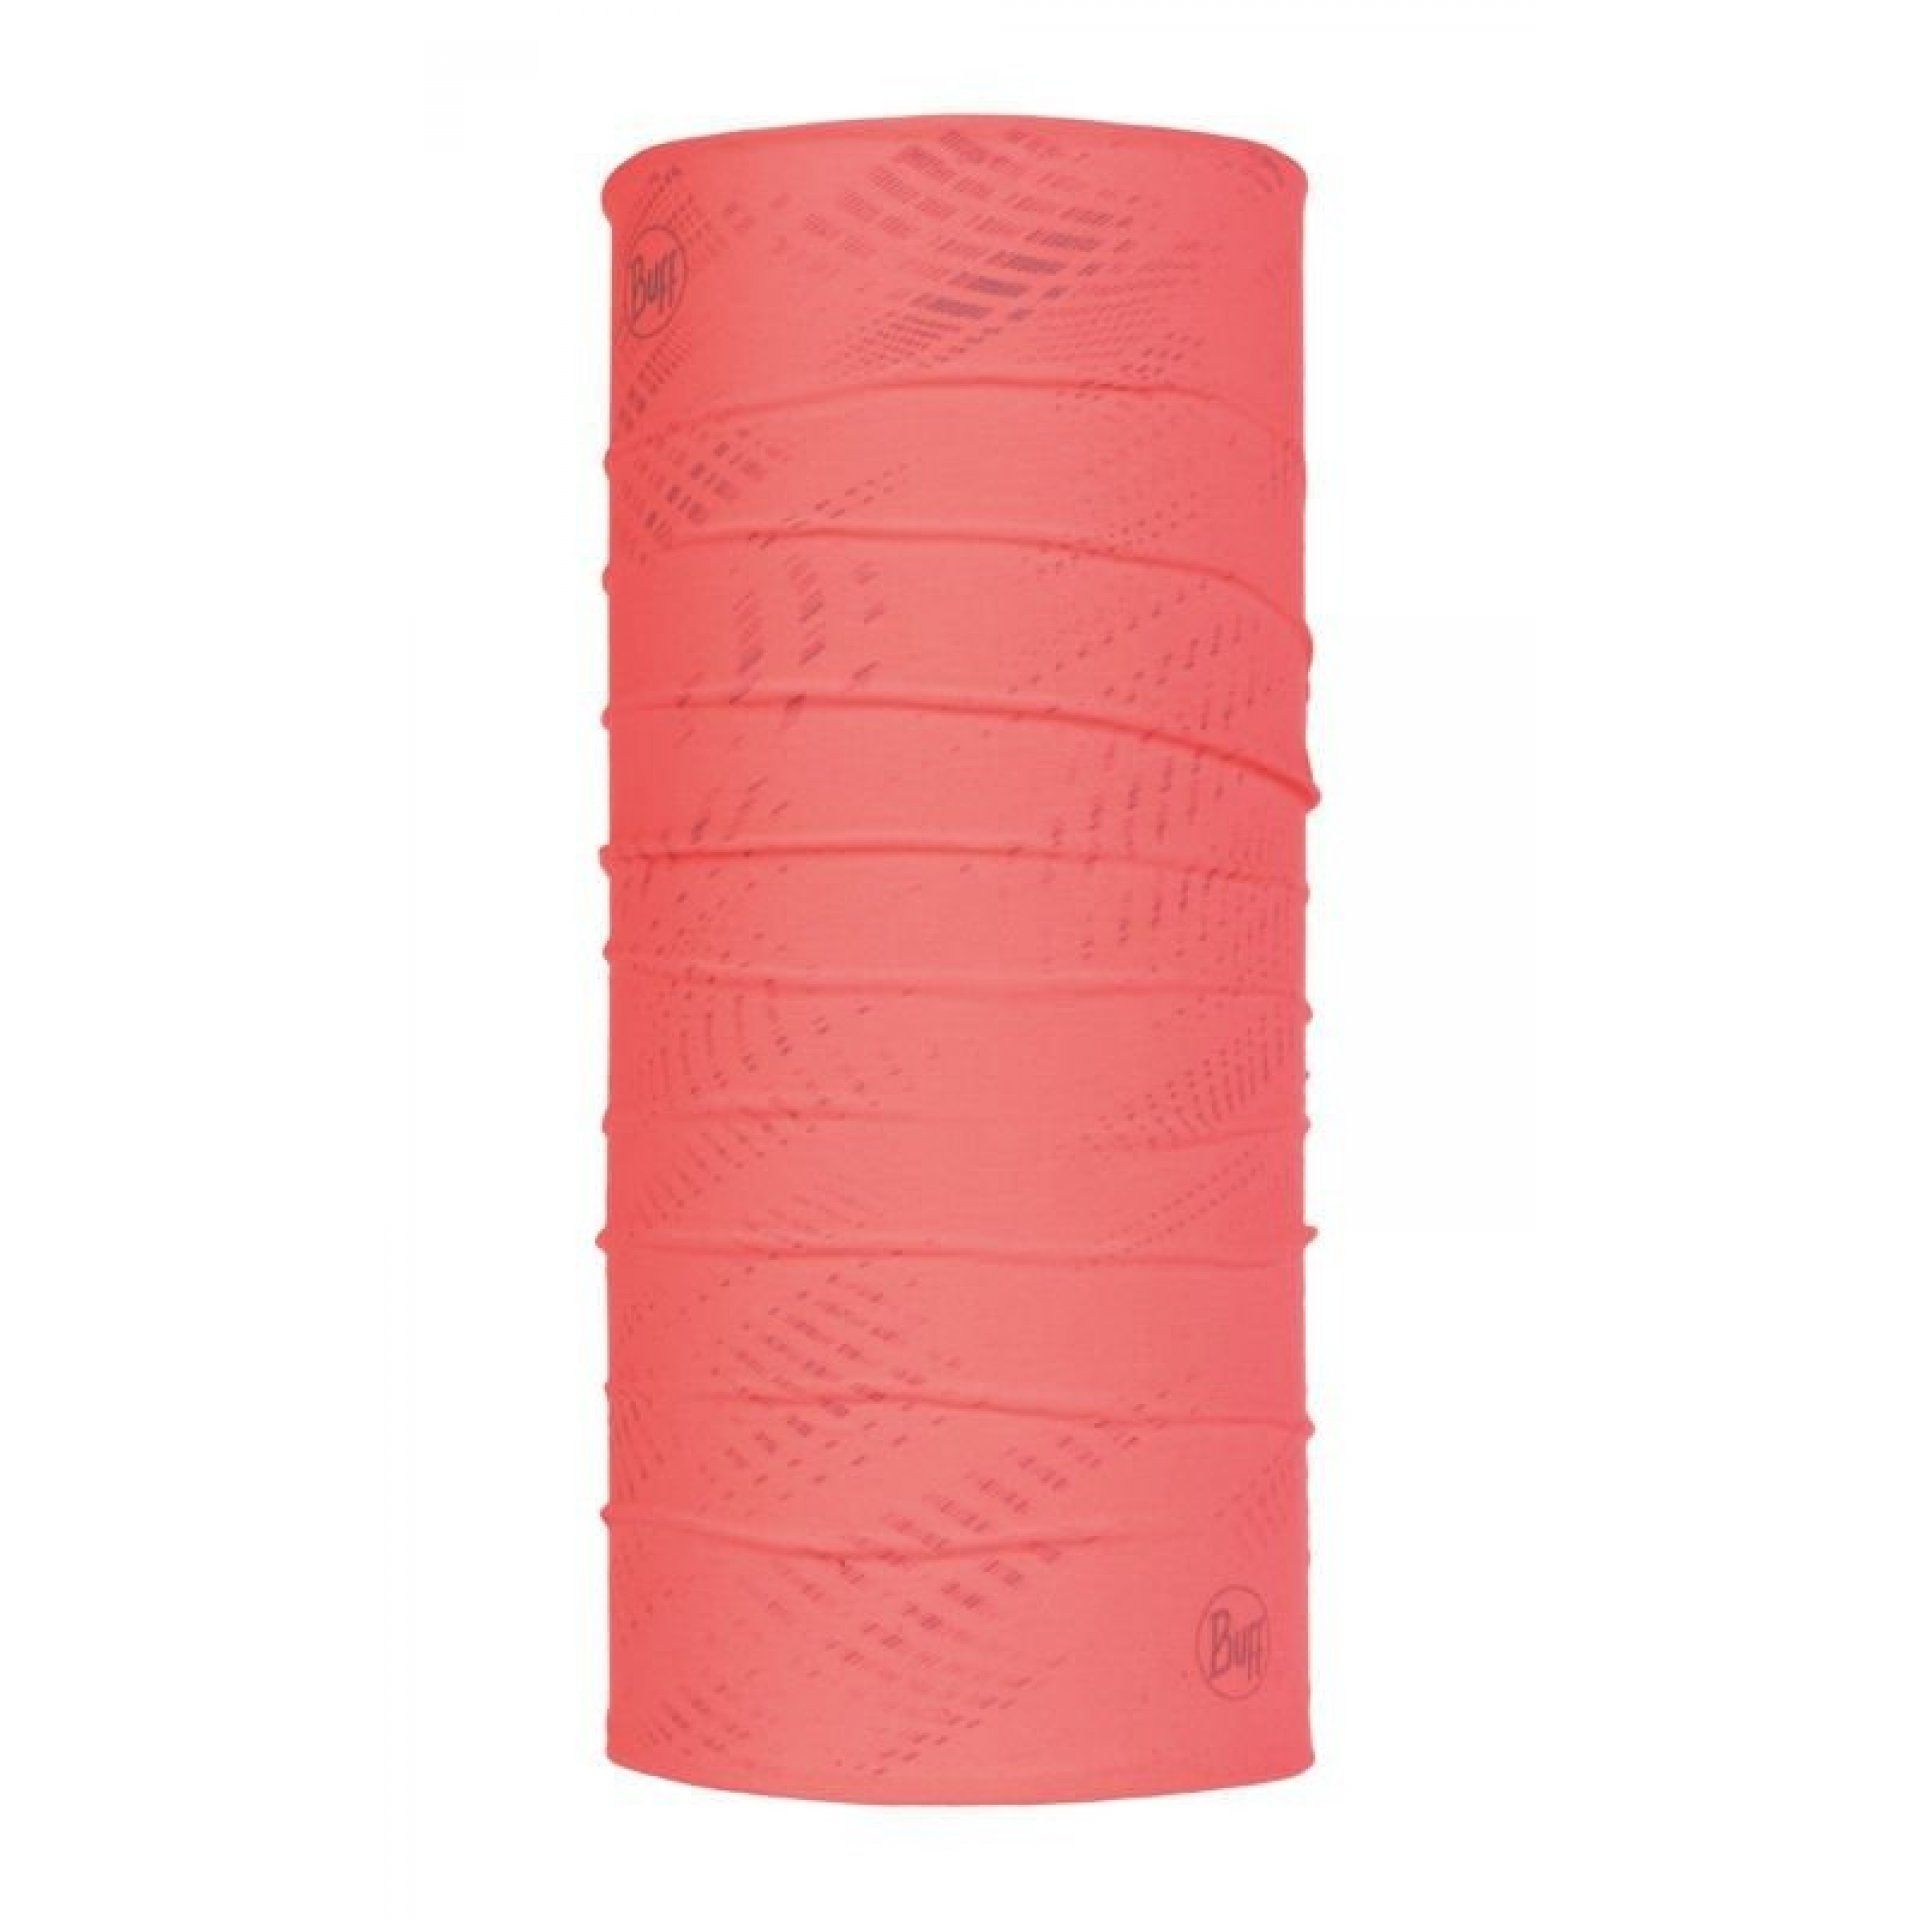 BUFF REFLECTIVE US R-SOLID CORAL PINK